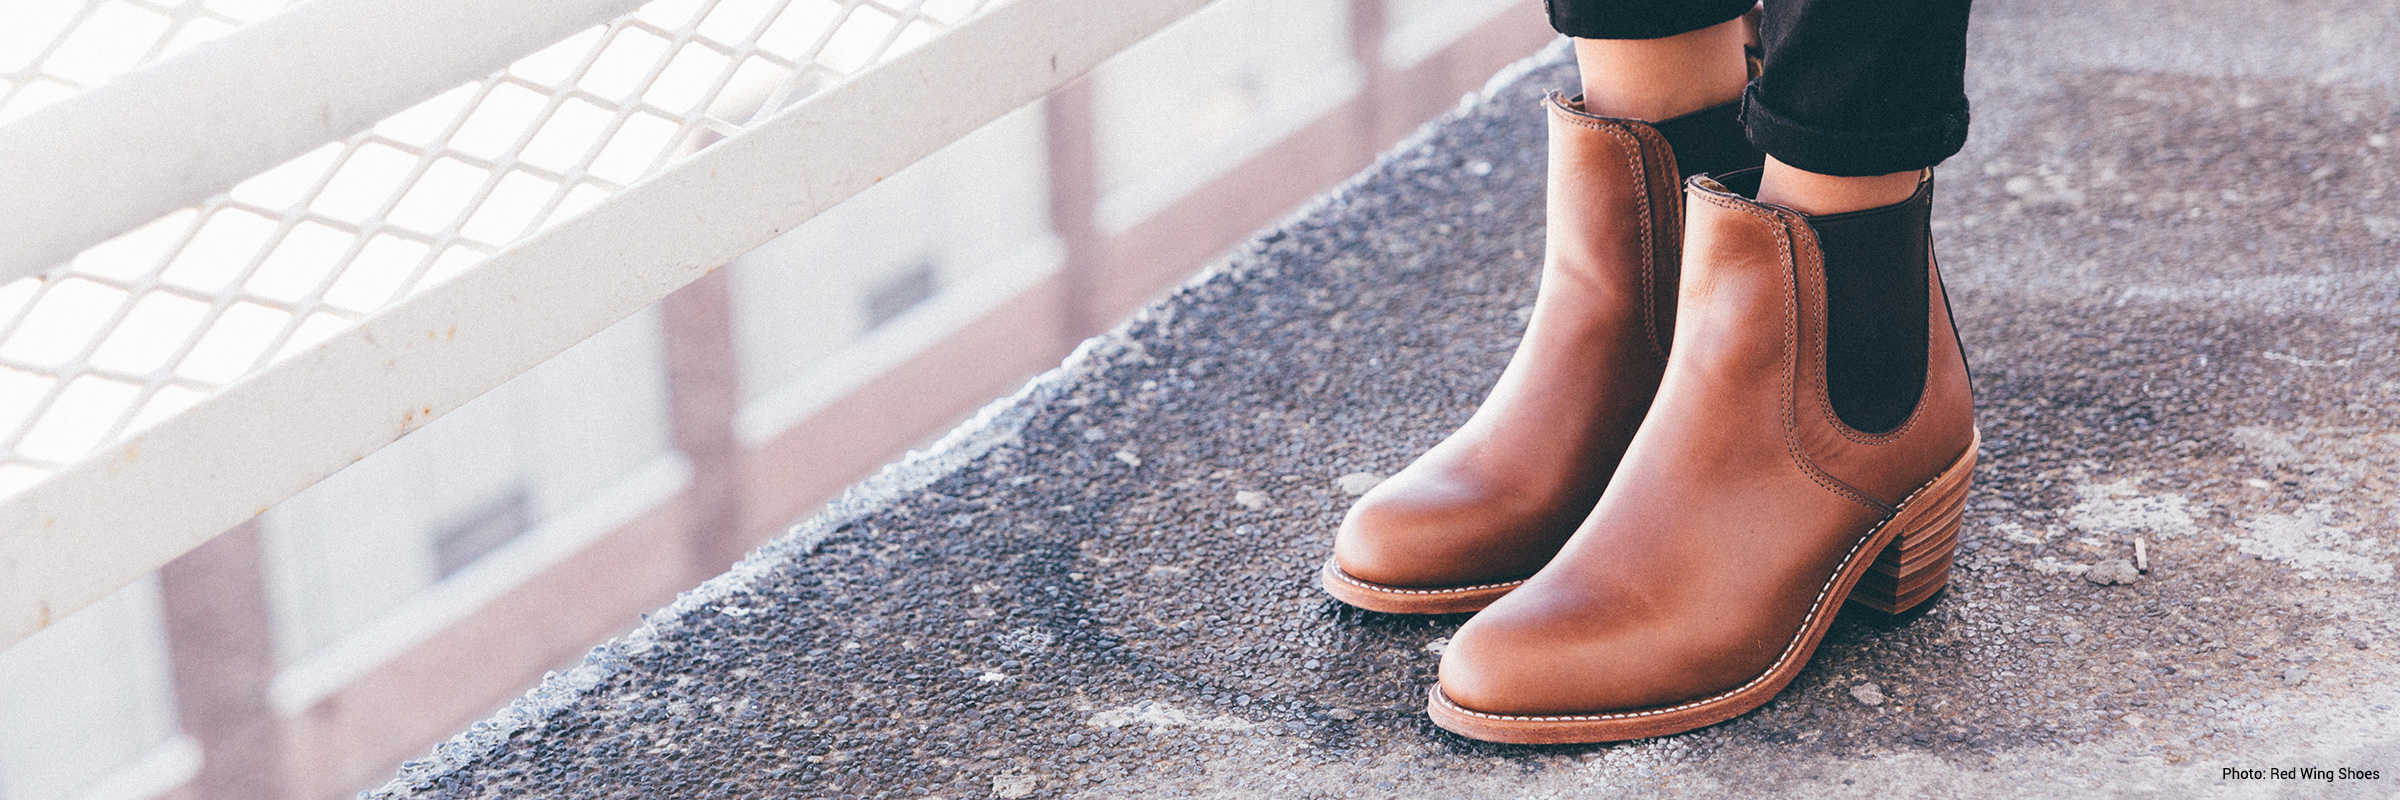 5 Stylish Women's Leather Boots For Fall 2017